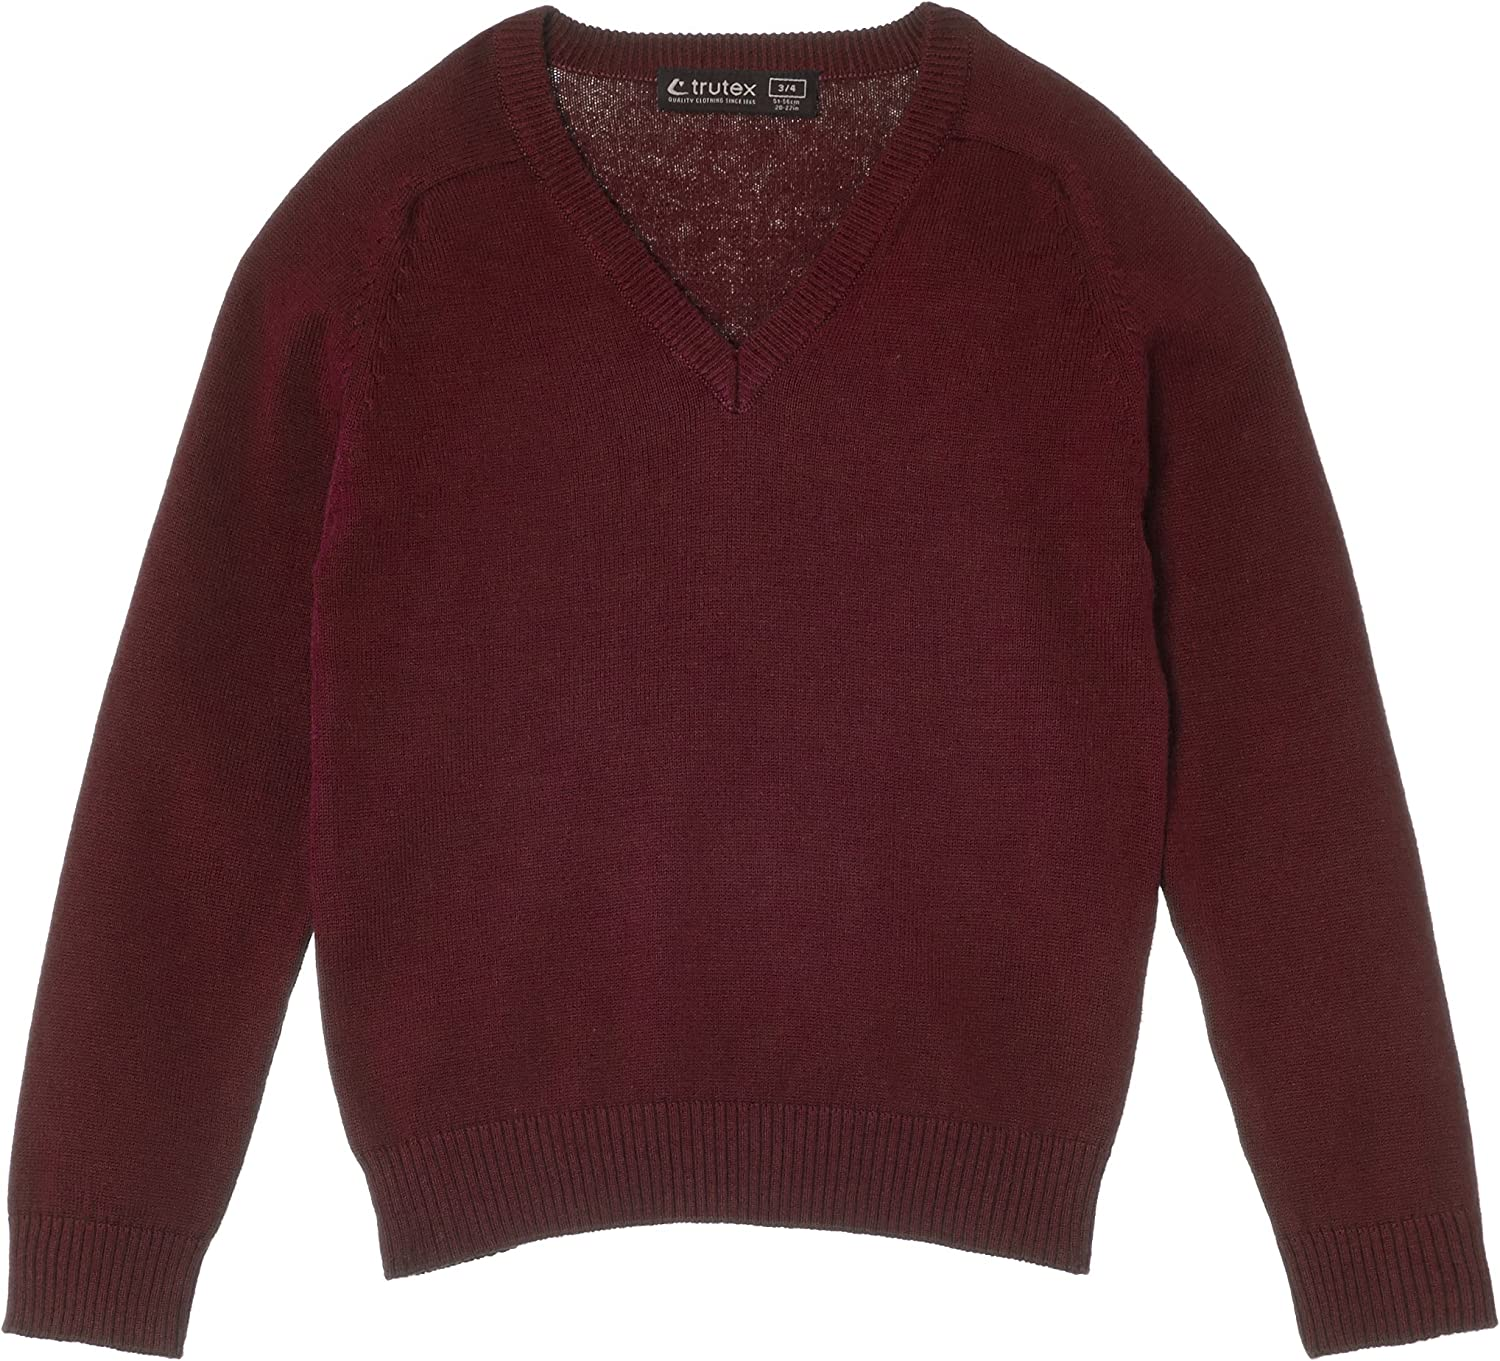 12 Years Trutex Girls Cotton V Neck Jumper Manufacturer Size: X-Small Maroon